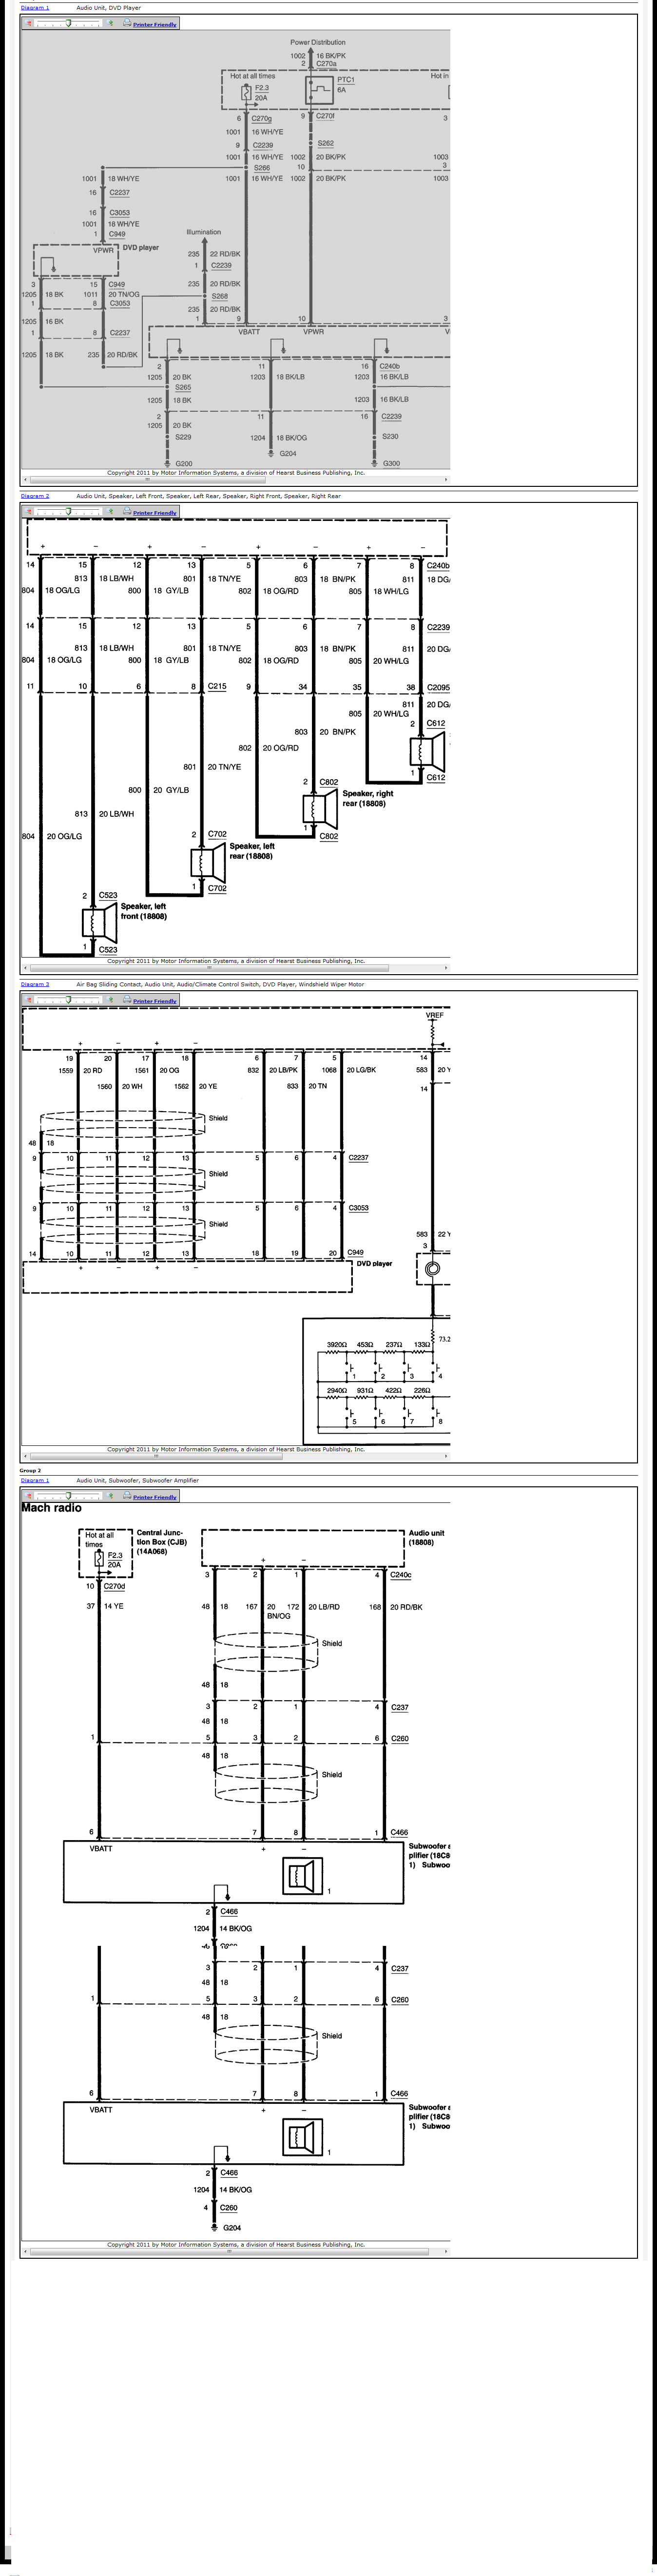 Wiring Diagram 2004 Mercury Mountaineer Factory Dvd Start Building 99 Fuse Box I Have A 2003 With The 6 Disc Radio Rh Justanswer Com 1998 2002